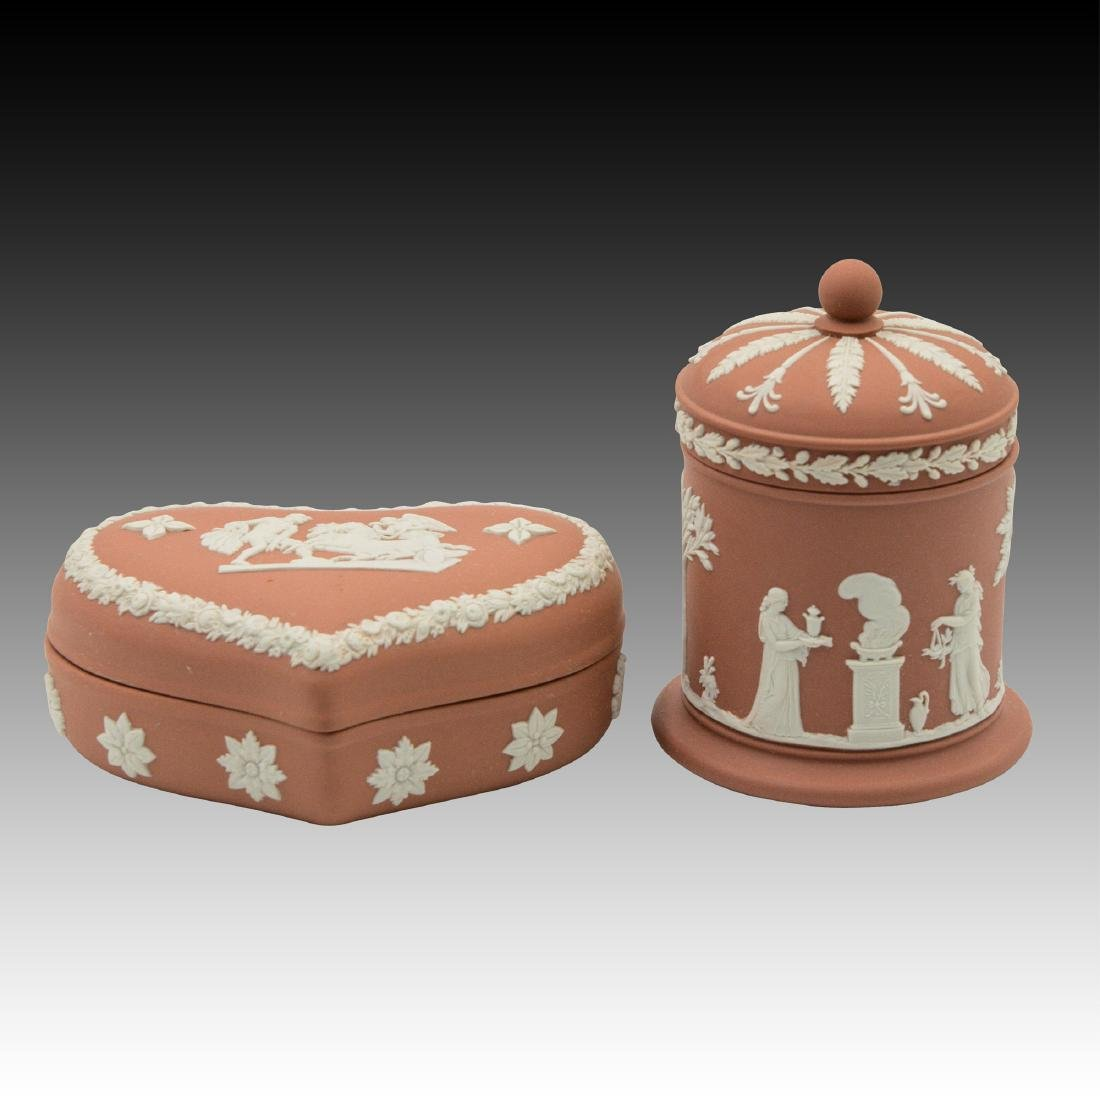 2 Wedgwood Jasperware boxes / containers